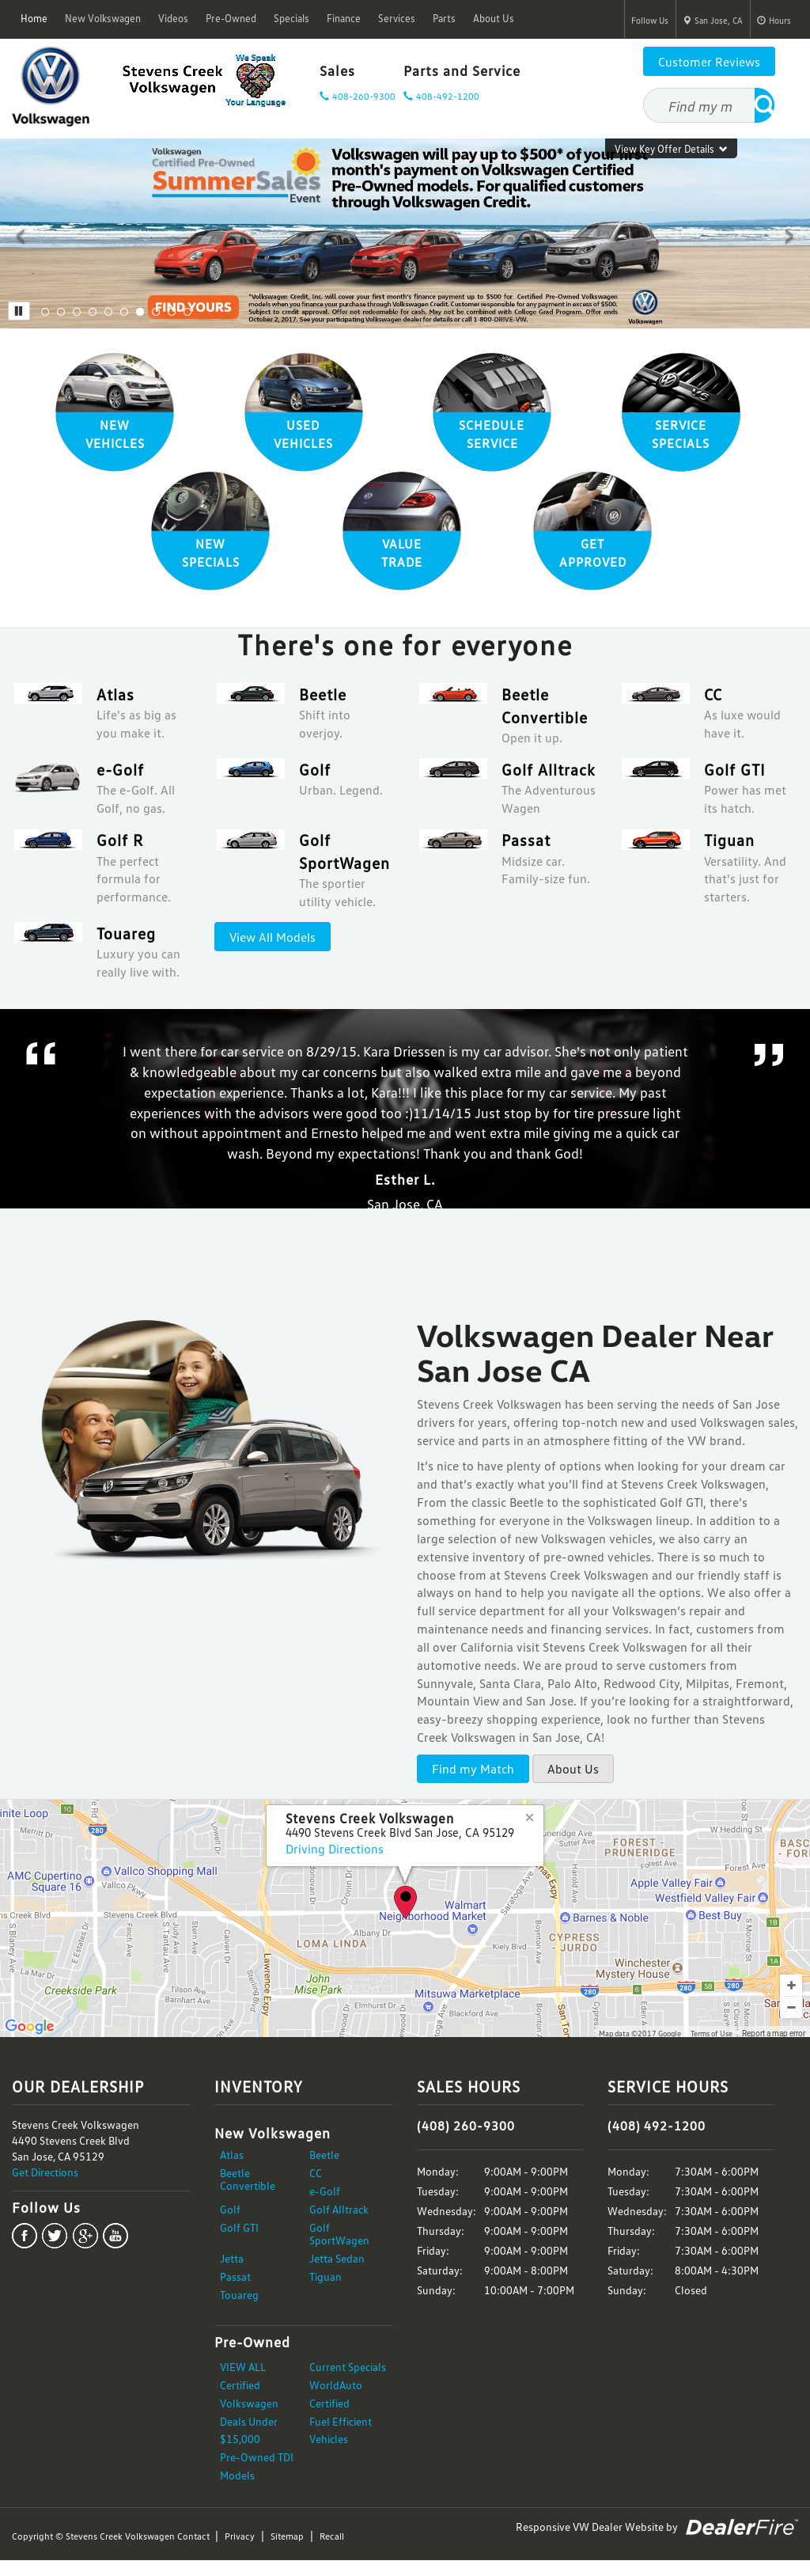 Stevens Creek Volkswagen Competitors, Revenue and Employees - Owler Company Profile